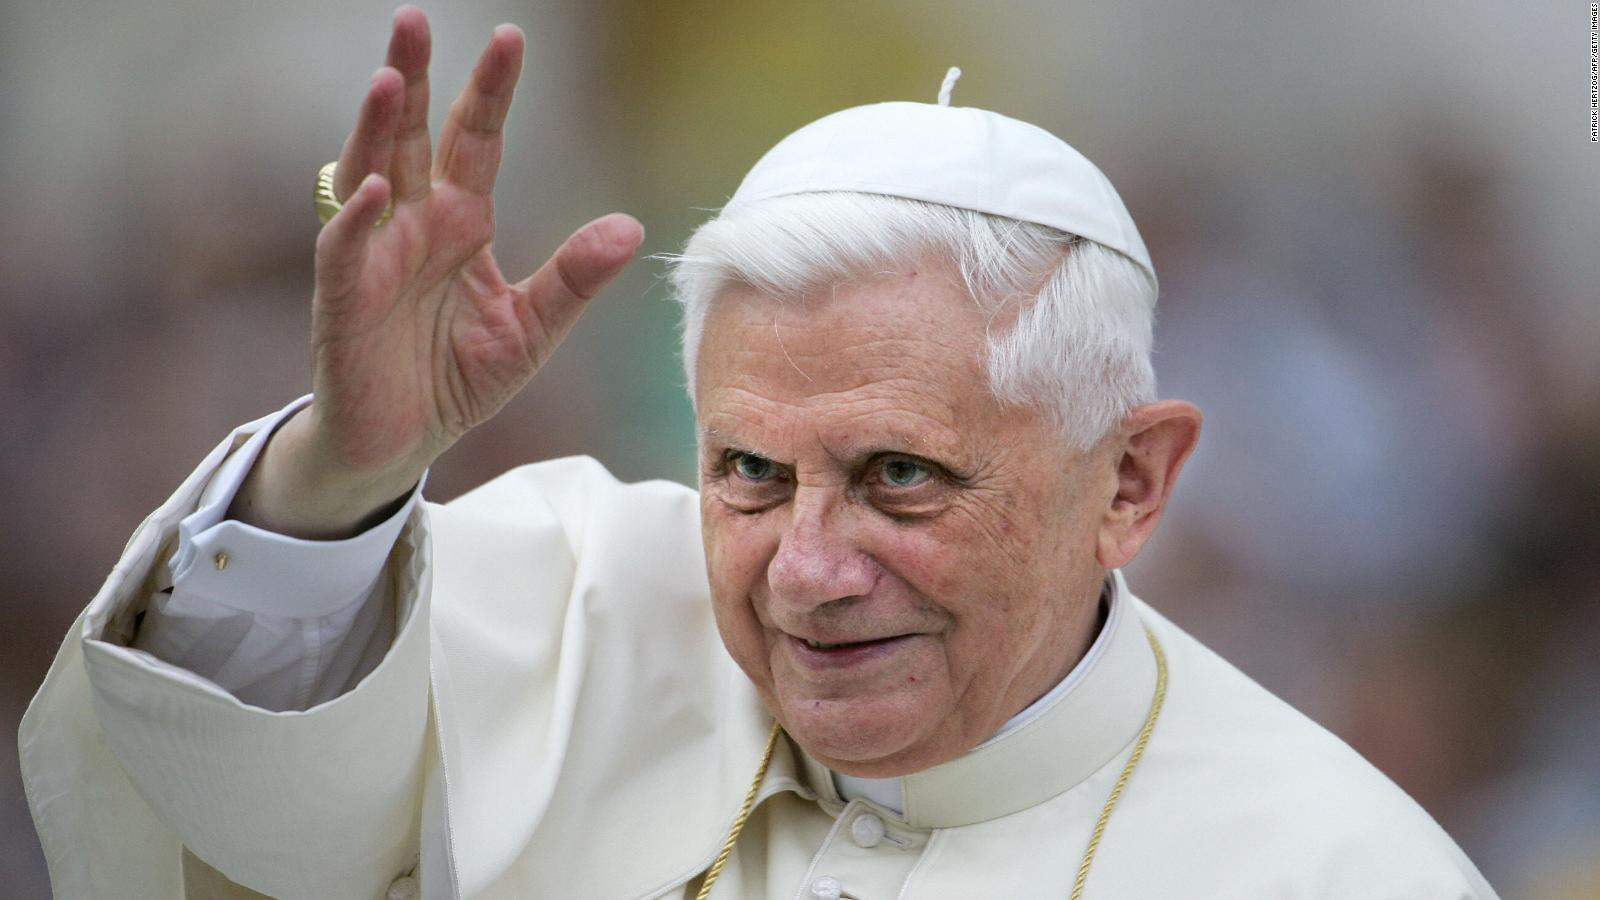 Why this Pope's resignation shocked the world